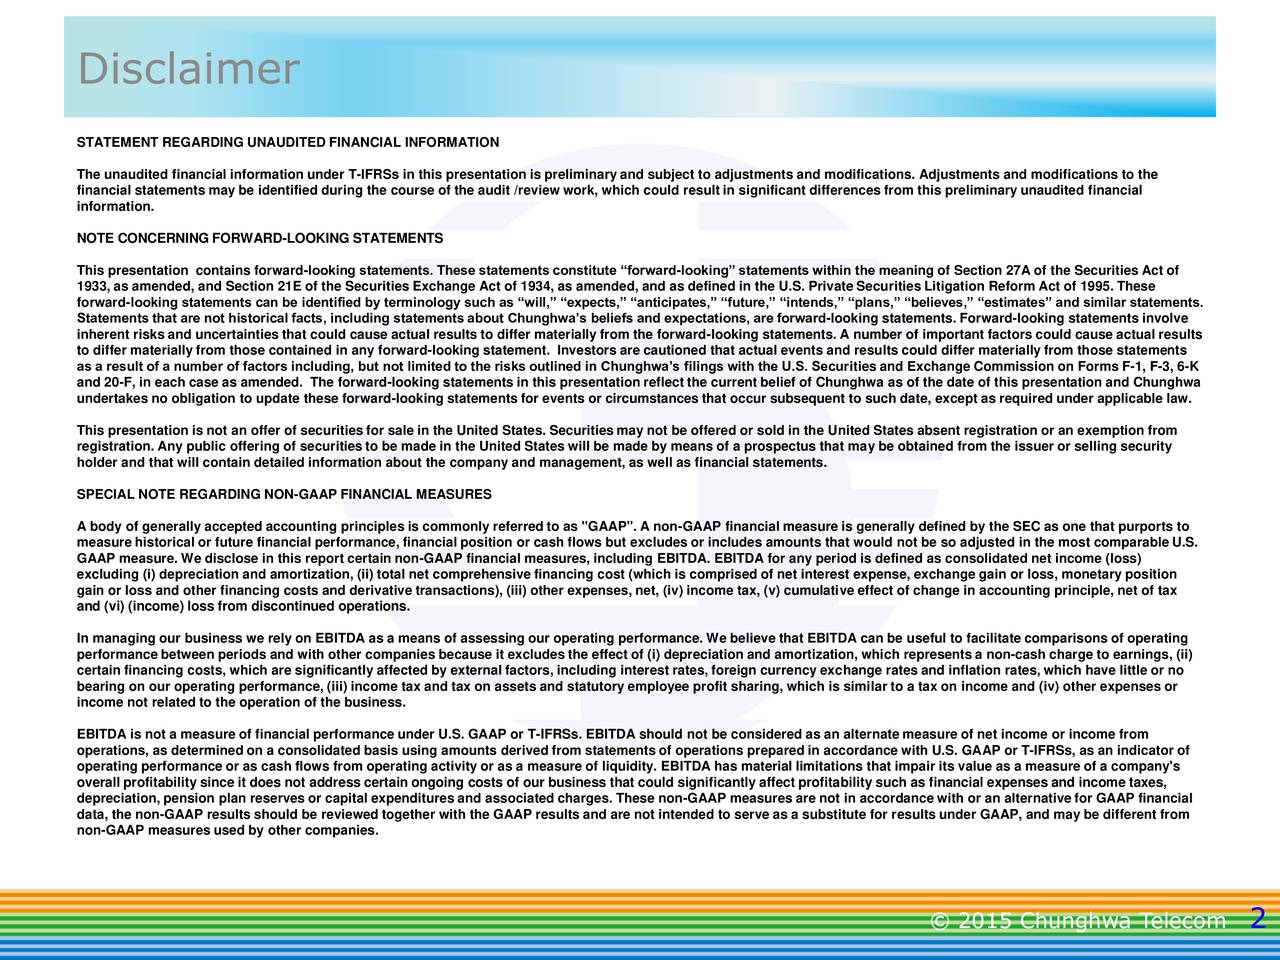 STATEMENT REGARDING UNAUDITED FINANCIAL INFORMATION The unaudited financial information under T-IFRSs in this presentation is preliminary and subject to adjustments and modifications. Adjustments and modifications to the financial statements may be identified during the course of the audit /review work, which could result in significant differences from this preliminary unaudited financial information. NOTE CONCERNING FORWARD-LOOKING STATEMENTS This presentation contains forward-looking statements. These statements constitute forward-looking statements within the meaning of Section 27A of the Securities Act of 1933, as amended, and Section 21E of the Securities Exchange Act of 1934, as amended, and as defined in the U.S. Private Securities Litigation Reform Act of 1995. These forward-looking statements can be identified by terminology such as will, expects, anticipates, future, intends, plans, believes, estimates and similar statements. Statements that are not historical facts, including statements about Chunghwas beliefs and expectations, are forward-looking statements. Forward-looking statements involve inherent risks and uncertainties that could cause actual results to differ materially from the forward-looking statements. A number of important factors could cause actual results to differ materially from those contained in any forward-looking statement. Investors are cautioned that actual events and results could differ materially from those statements as a result of a number of factors including, but not limited to the risks outlined in Chunghwas filings with the U.S. Securities and Exchange Commission on Forms F-1, F-3, 6-K and 20-F, in each case as amended. The forward-looking statements in this presentation reflect the current belief of Chunghwa as of the date of this presentation and Chunghwa undertakes no obligation to update these forward-looking statements for events or circumstances that occur subsequent to such date, except as required under applicable 